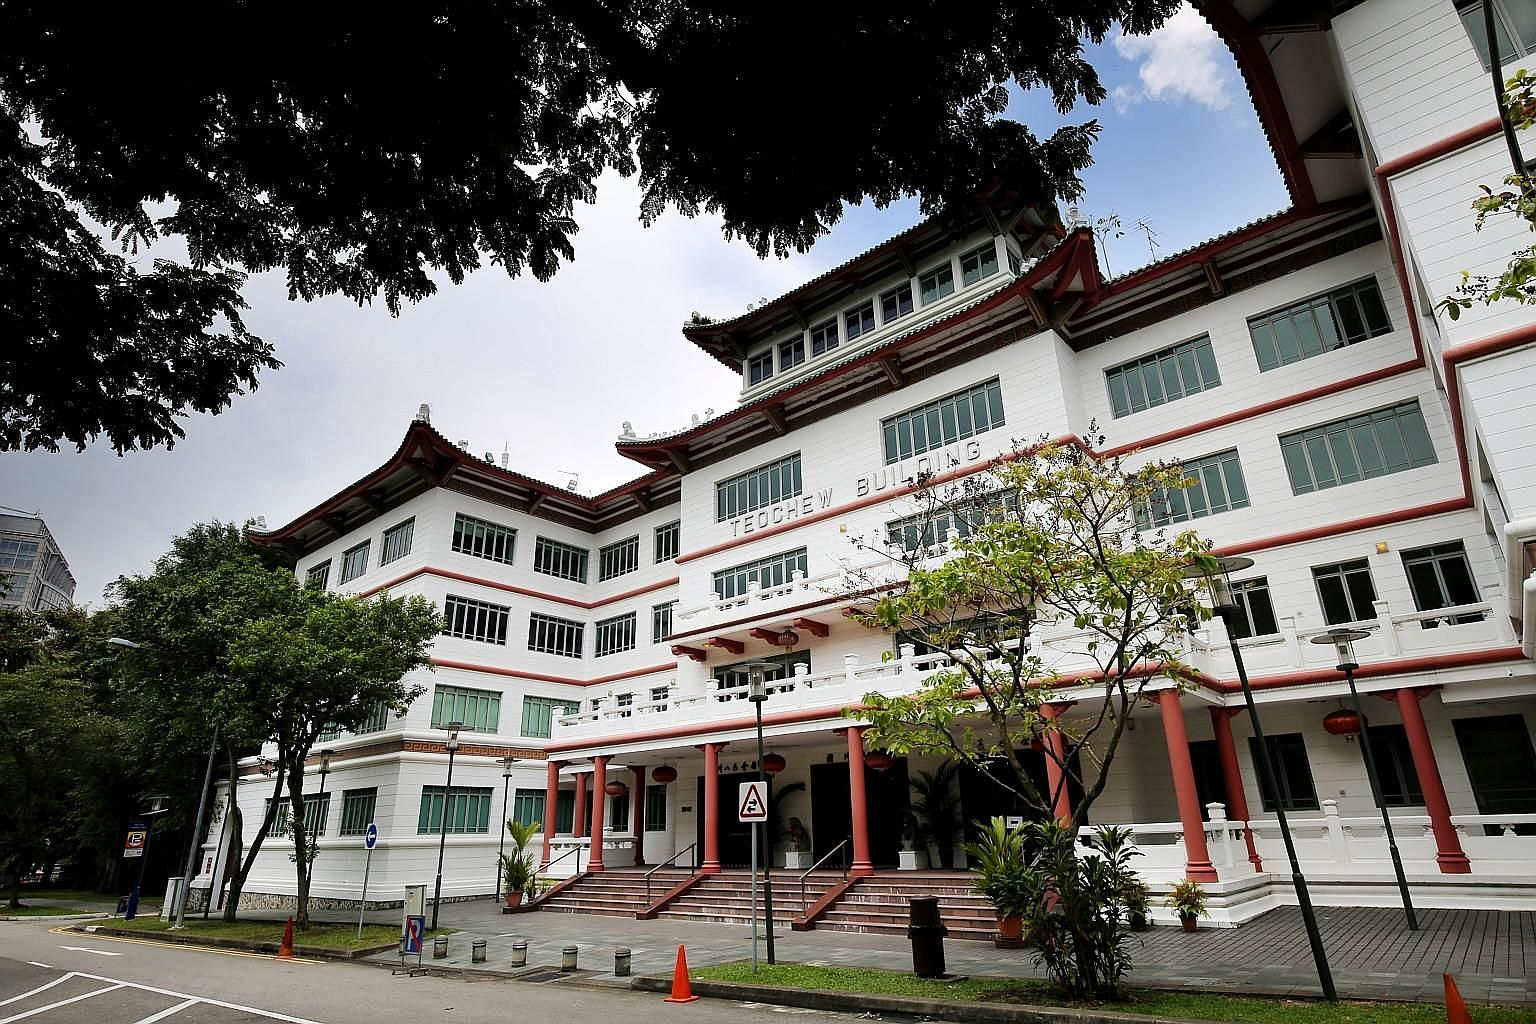 The Ngee Ann Kongsi last year applied for a court order for the Teochew Poit Ip Huay Kuan to vacate the Teochew Building.